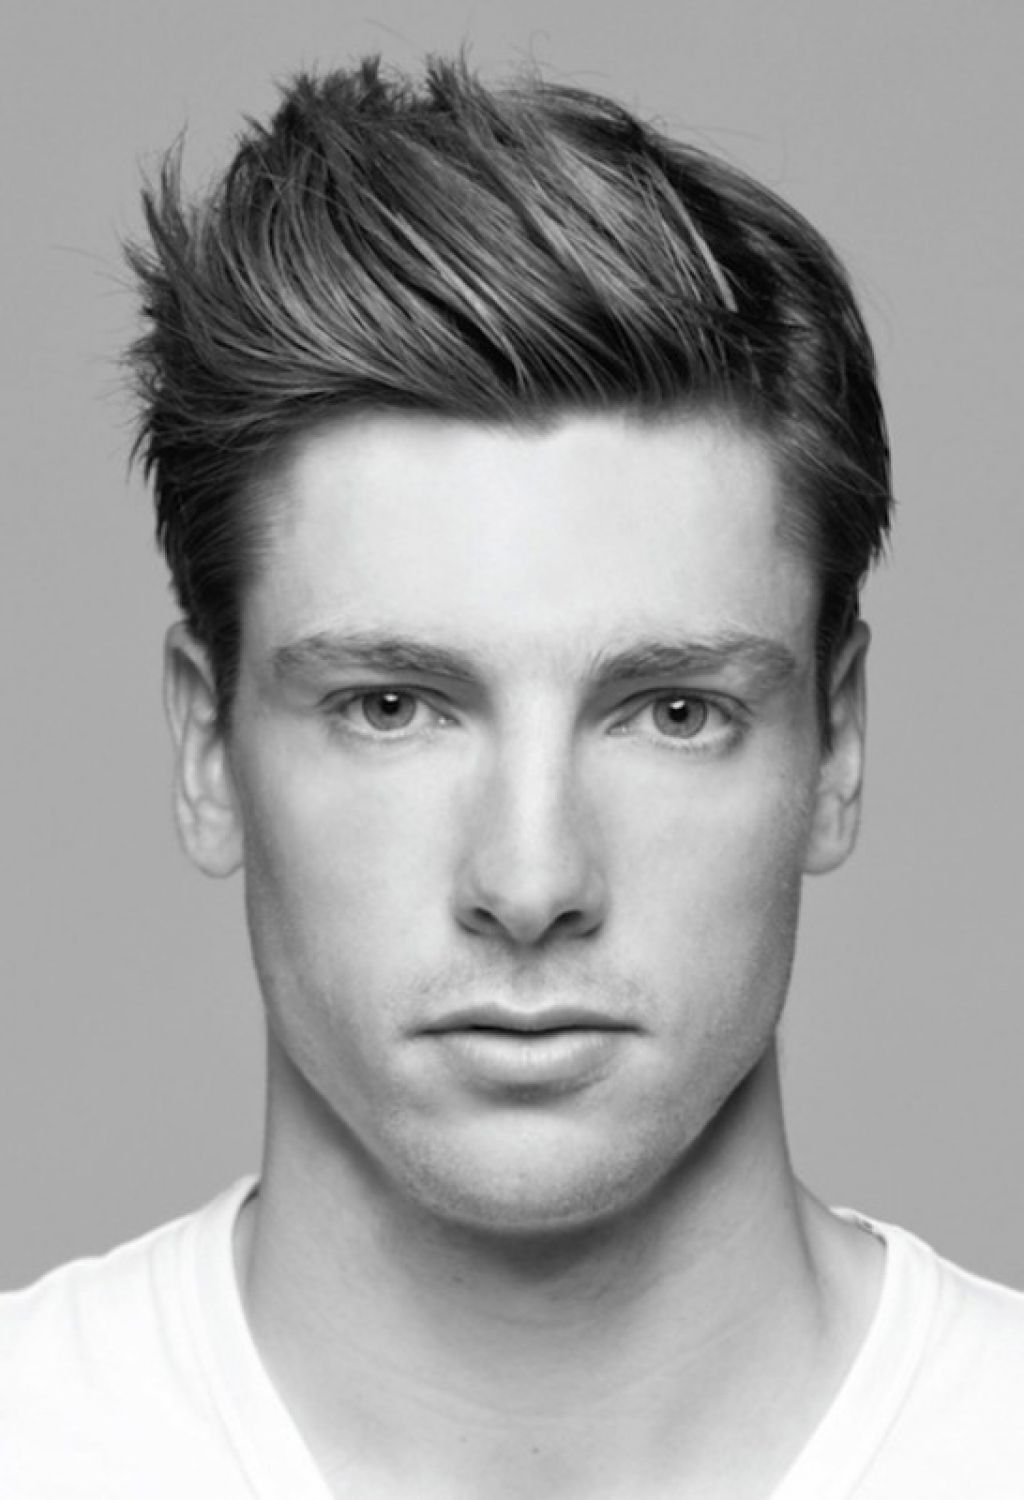 Oblong face haircut men Стрижка   creative hairstyles  pinterest  creative hairstyles